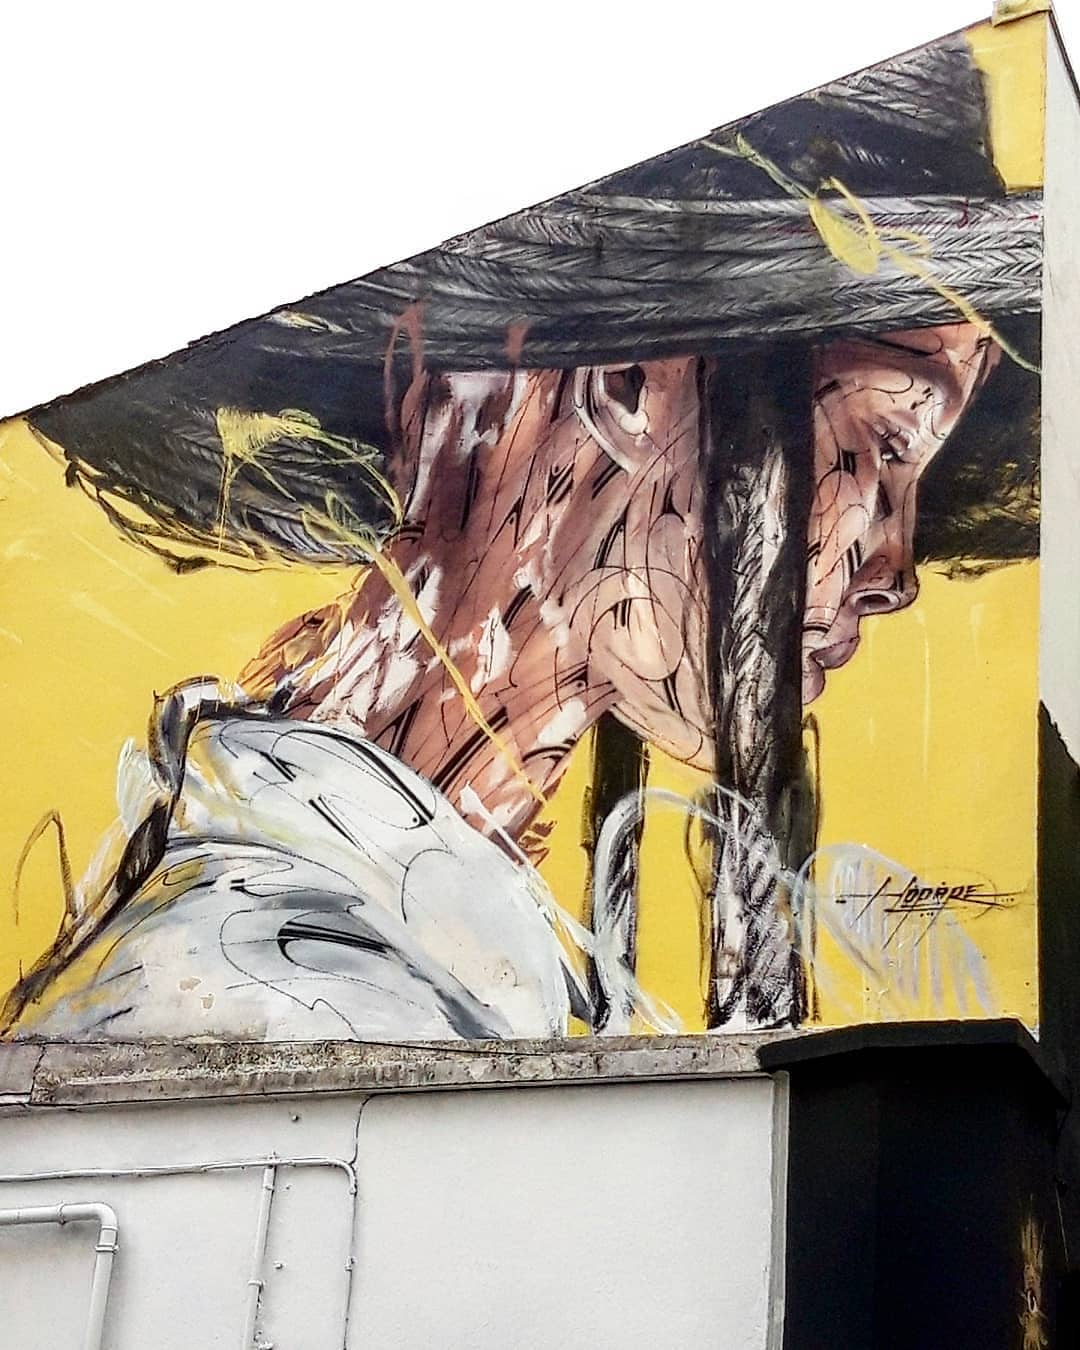 Hopare @ Paris, France